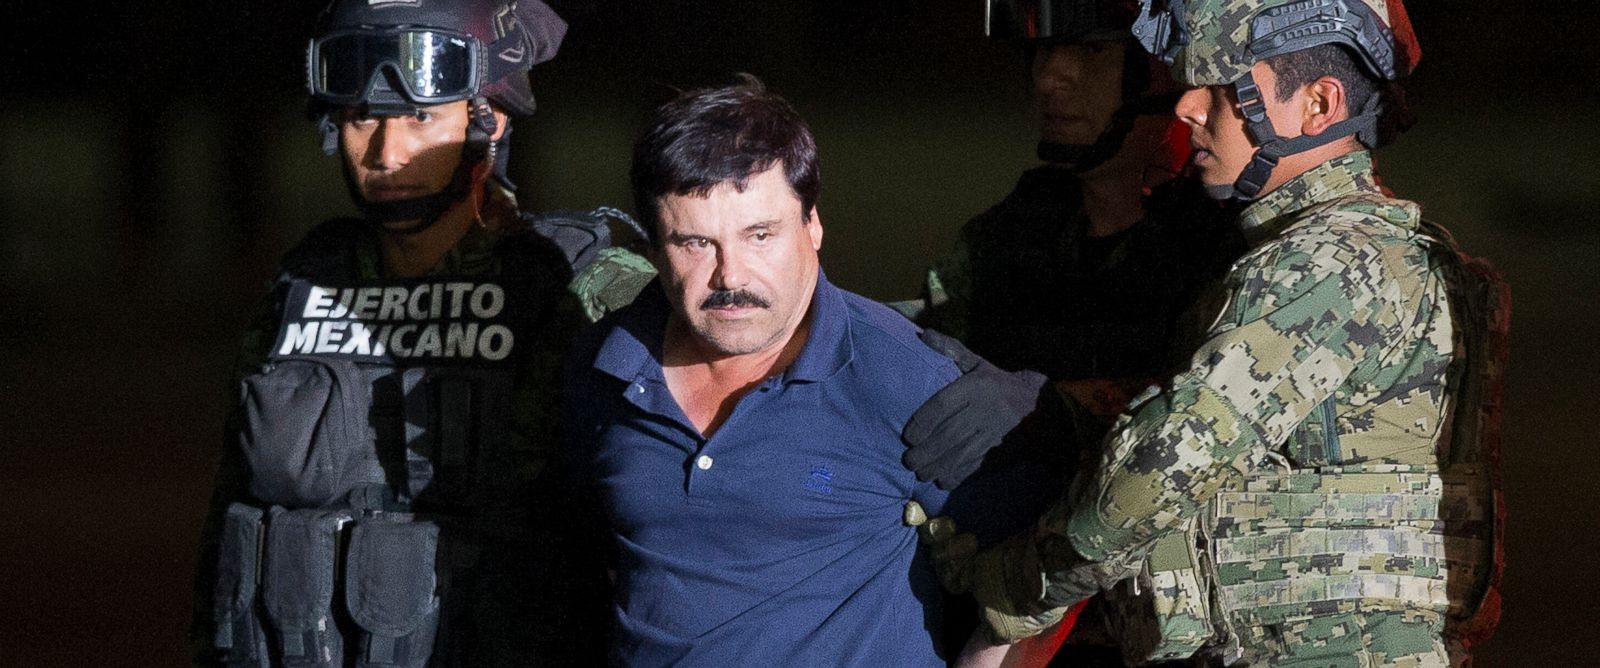 "PHOTO: Joaquin ""El Chapo"" Guzman is made to face the press as he is escorted to a helicopter in handcuffs by Mexican soldiers and marines at a federal hangar in Mexico City, Mexico, Friday, Jan. 8, 2016."